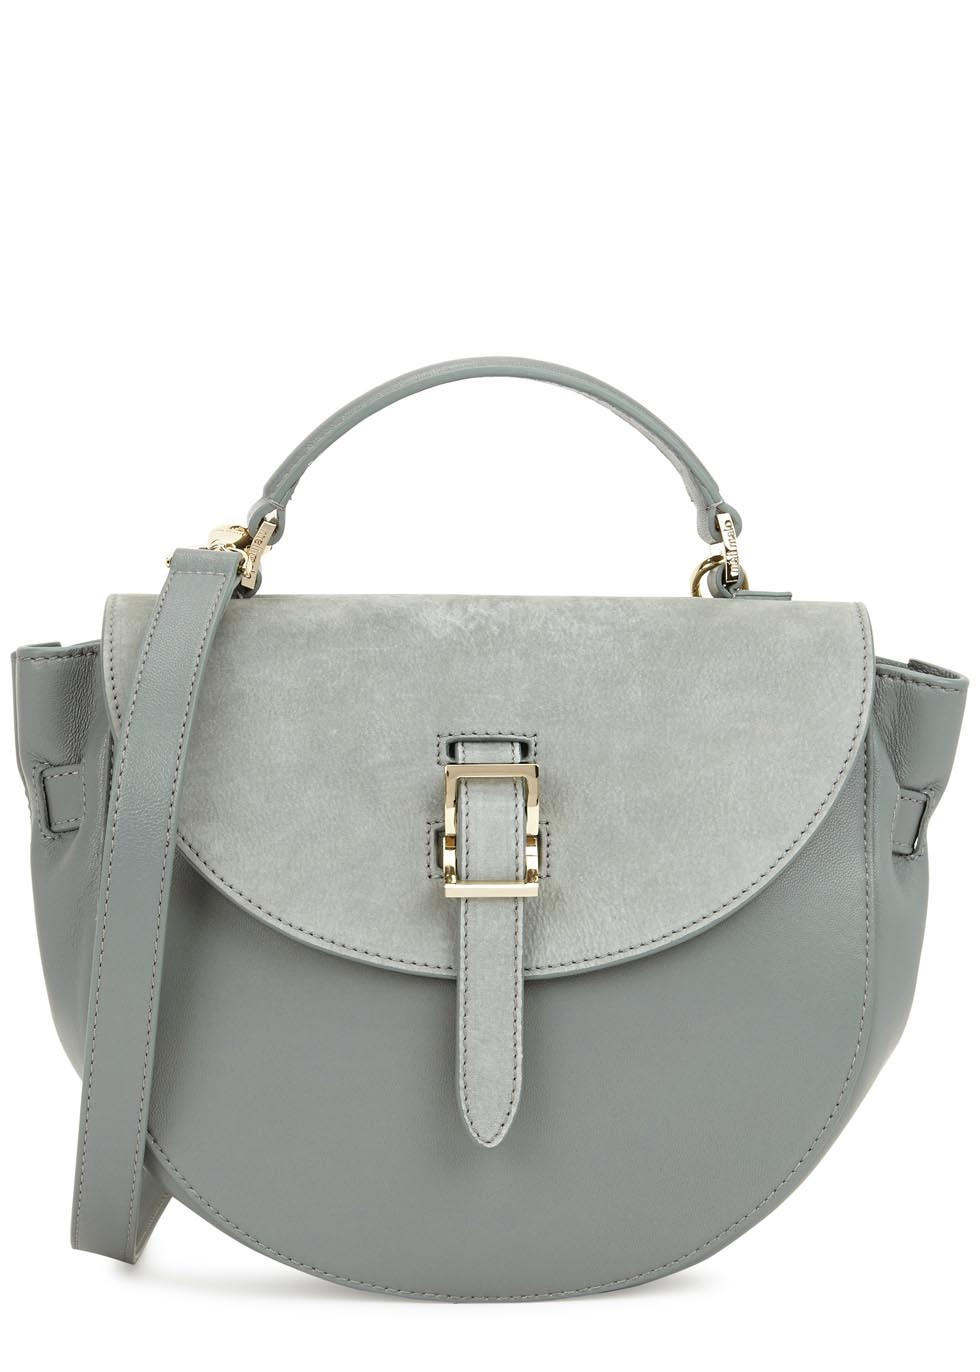 Ortensia Grey Leather Shoulder Bag - predominant colour: light grey; occasions: casual, creative work; type of pattern: light; style: saddle; length: across body/long; size: standard; material: leather; pattern: plain; finish: plain; wardrobe: basic; season: a/w 2016